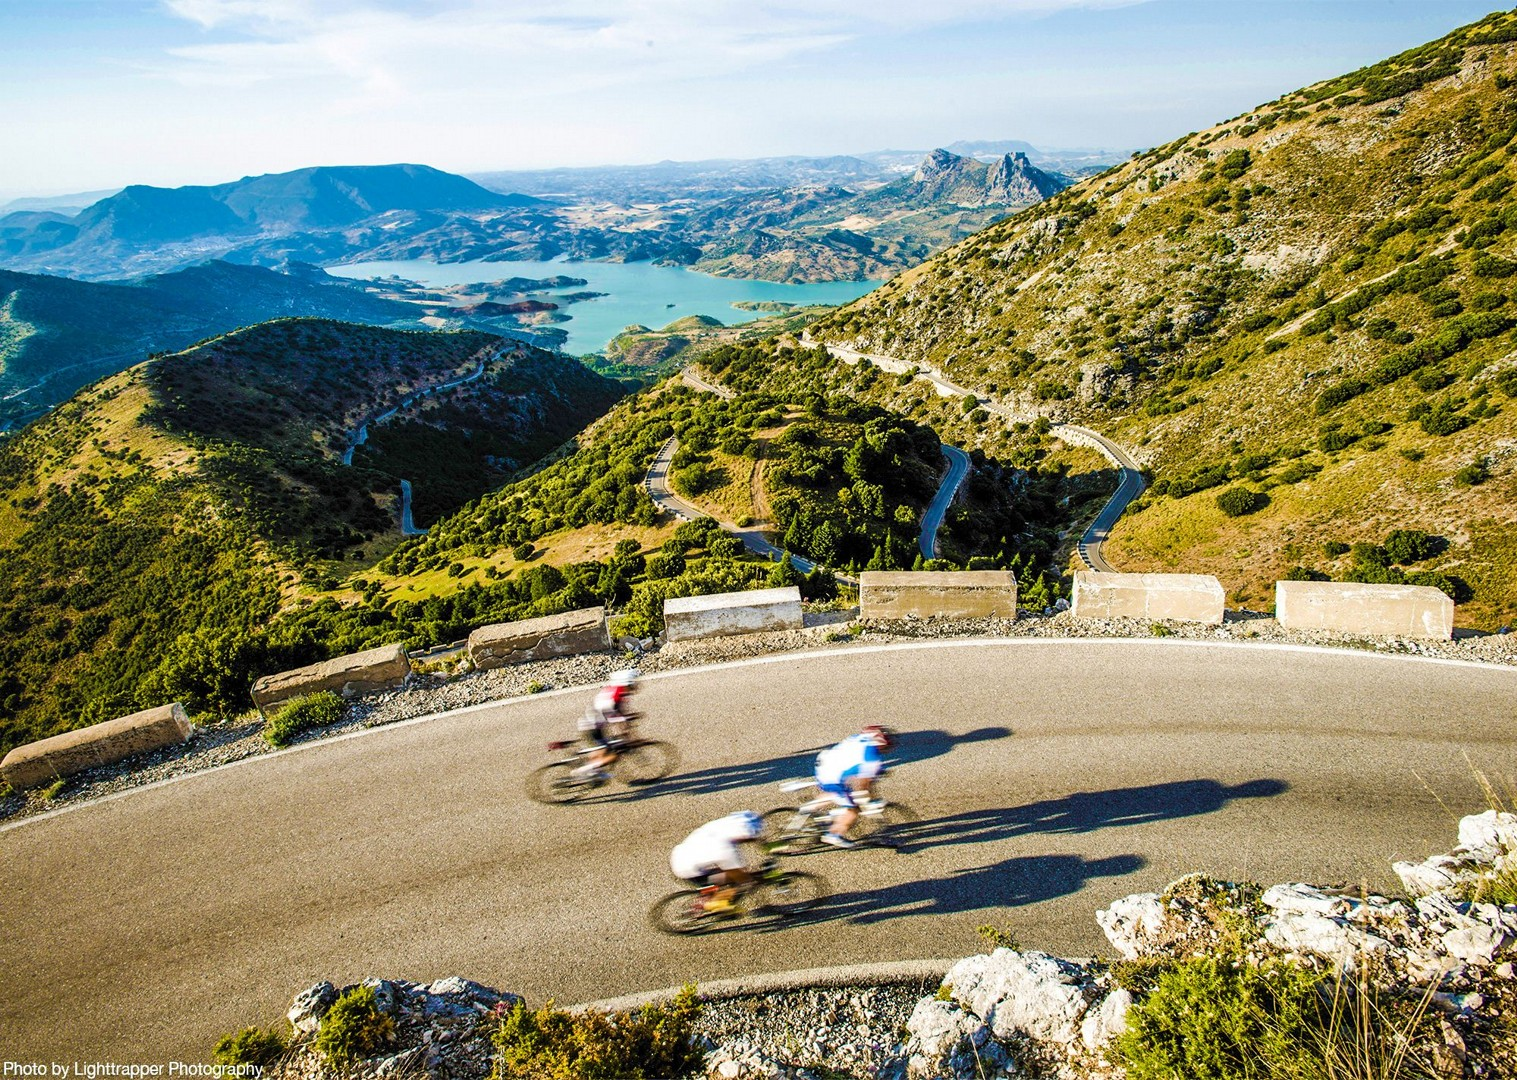 puerto-de-las-palomas-road-cycling-climb-challenge.jpg - Southern Spain - Roads of Ronda - Guided Road Cycling Holiday - Road Cycling